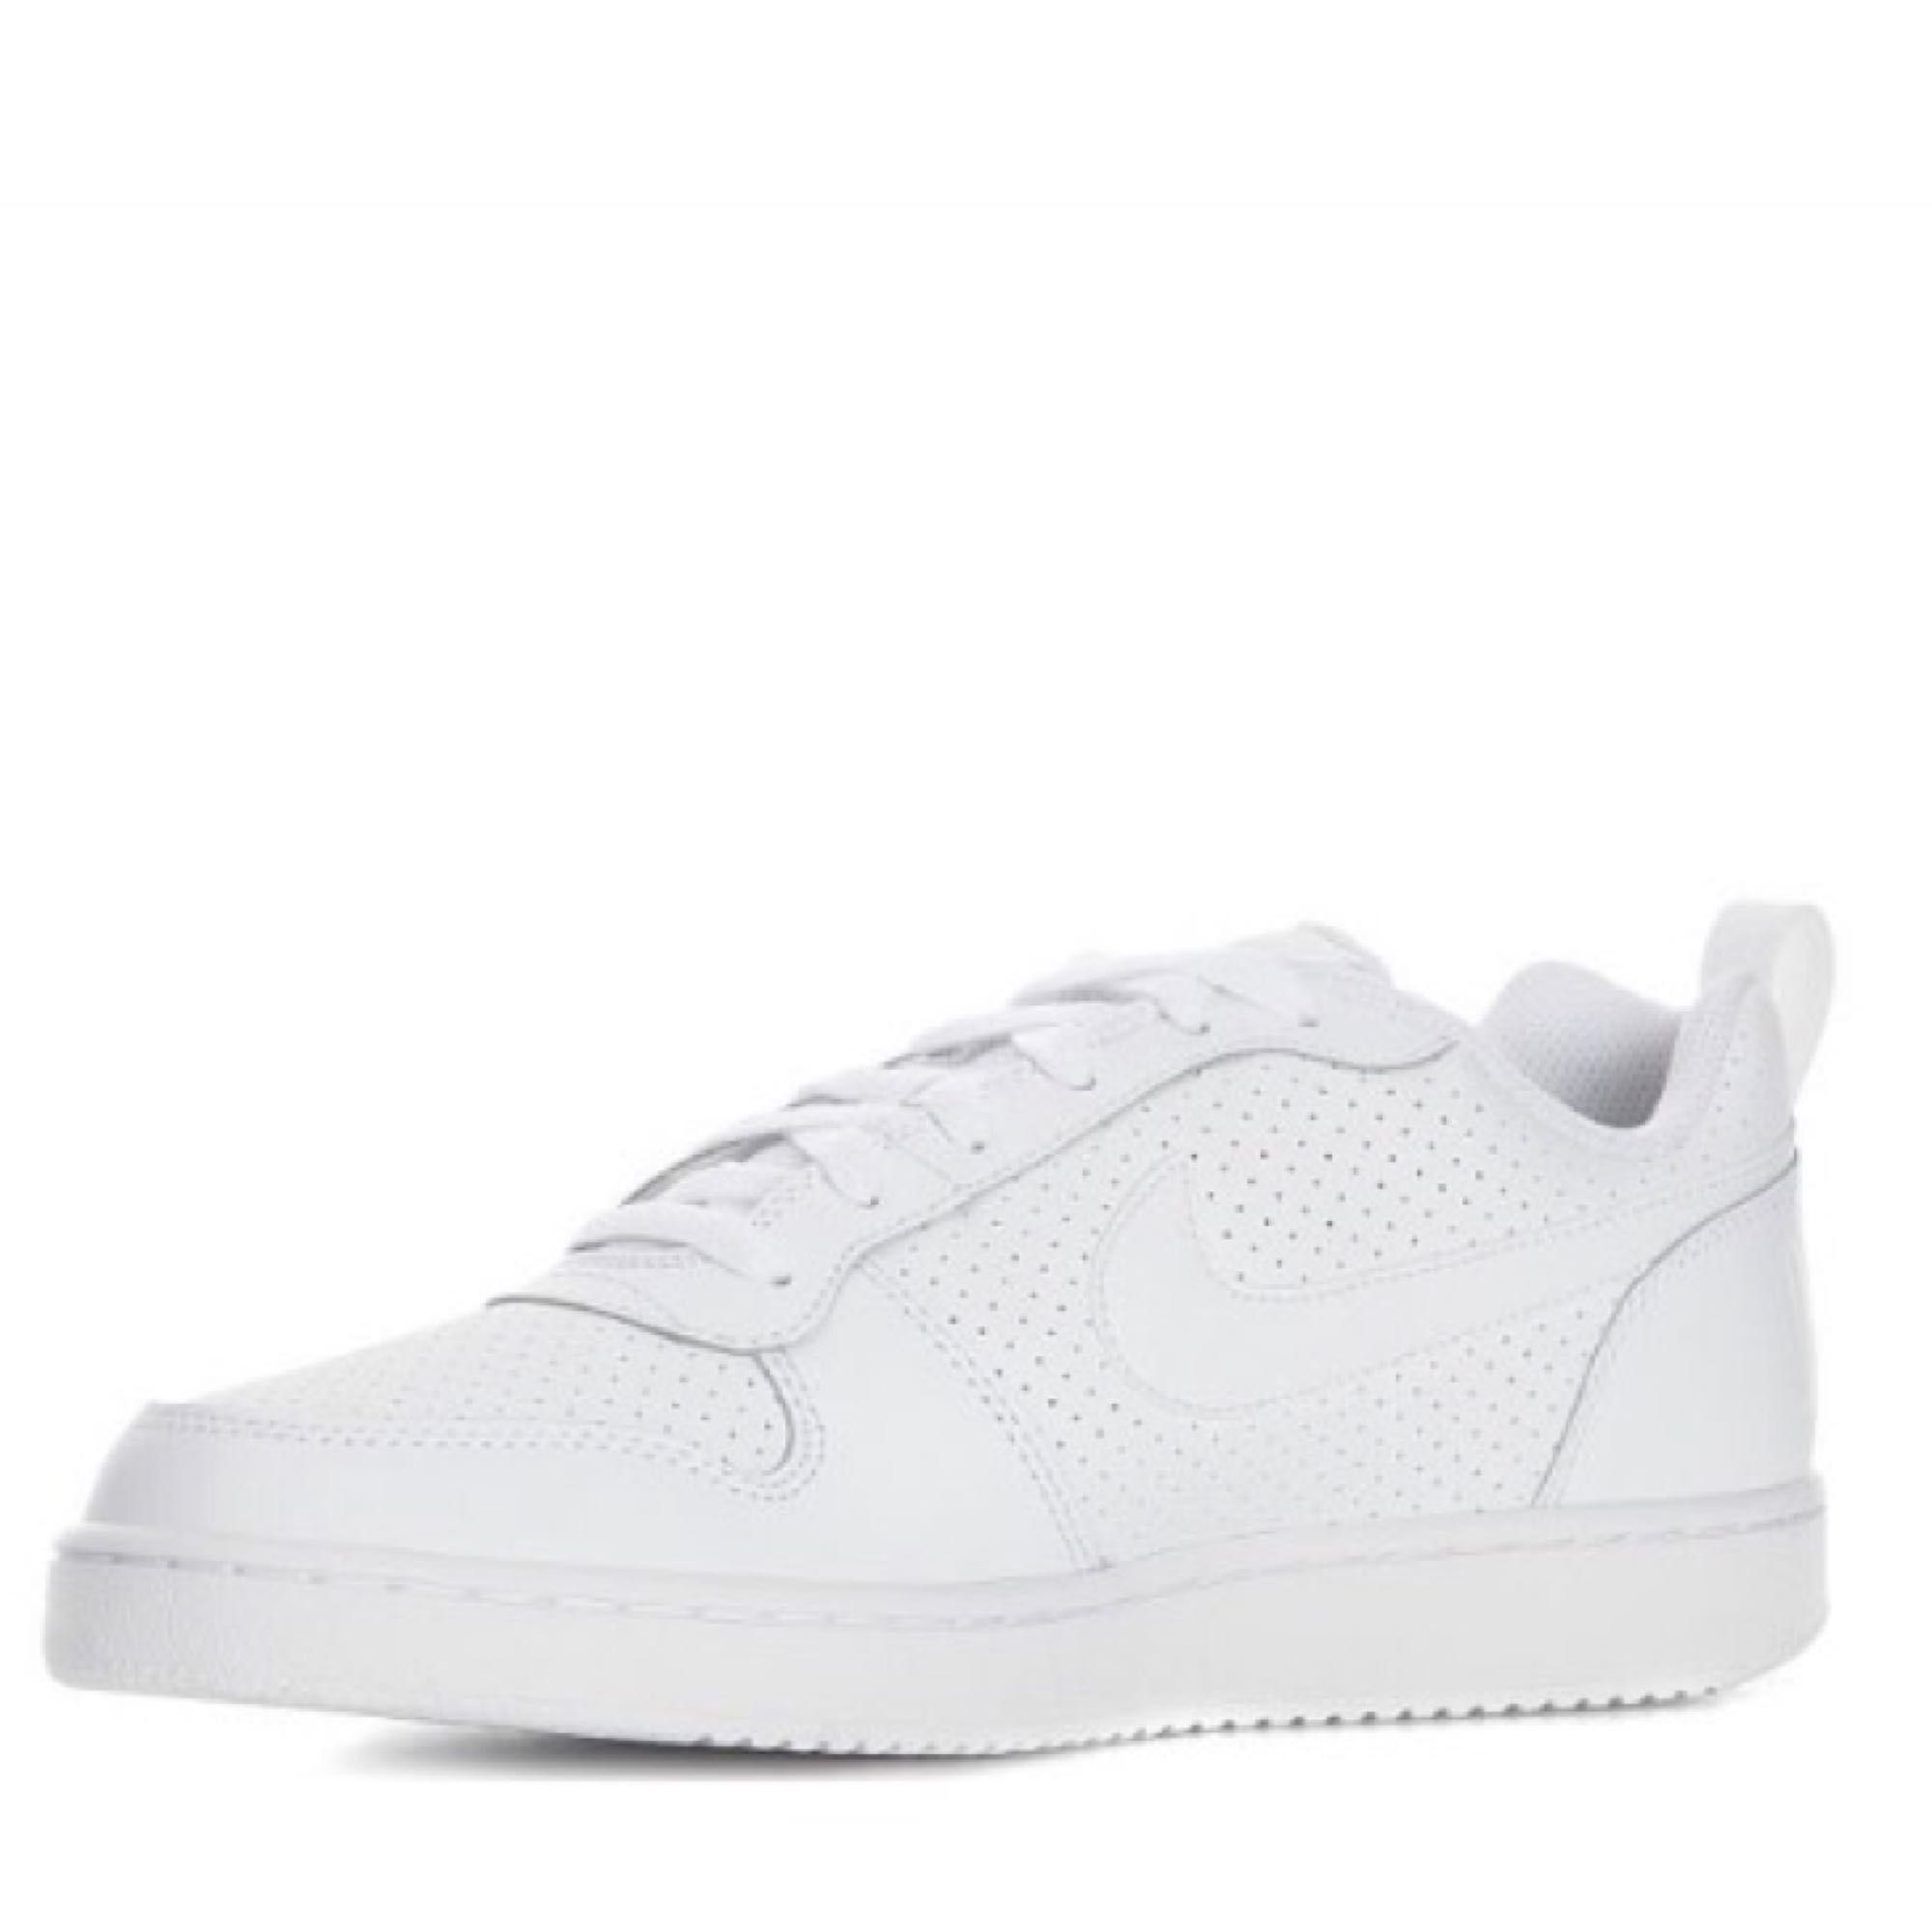 "competitive price 088d4 3828a ... huge discount fa8b5 aebbc Helt nya sneakers från Nike i modellen ""court  borough""."